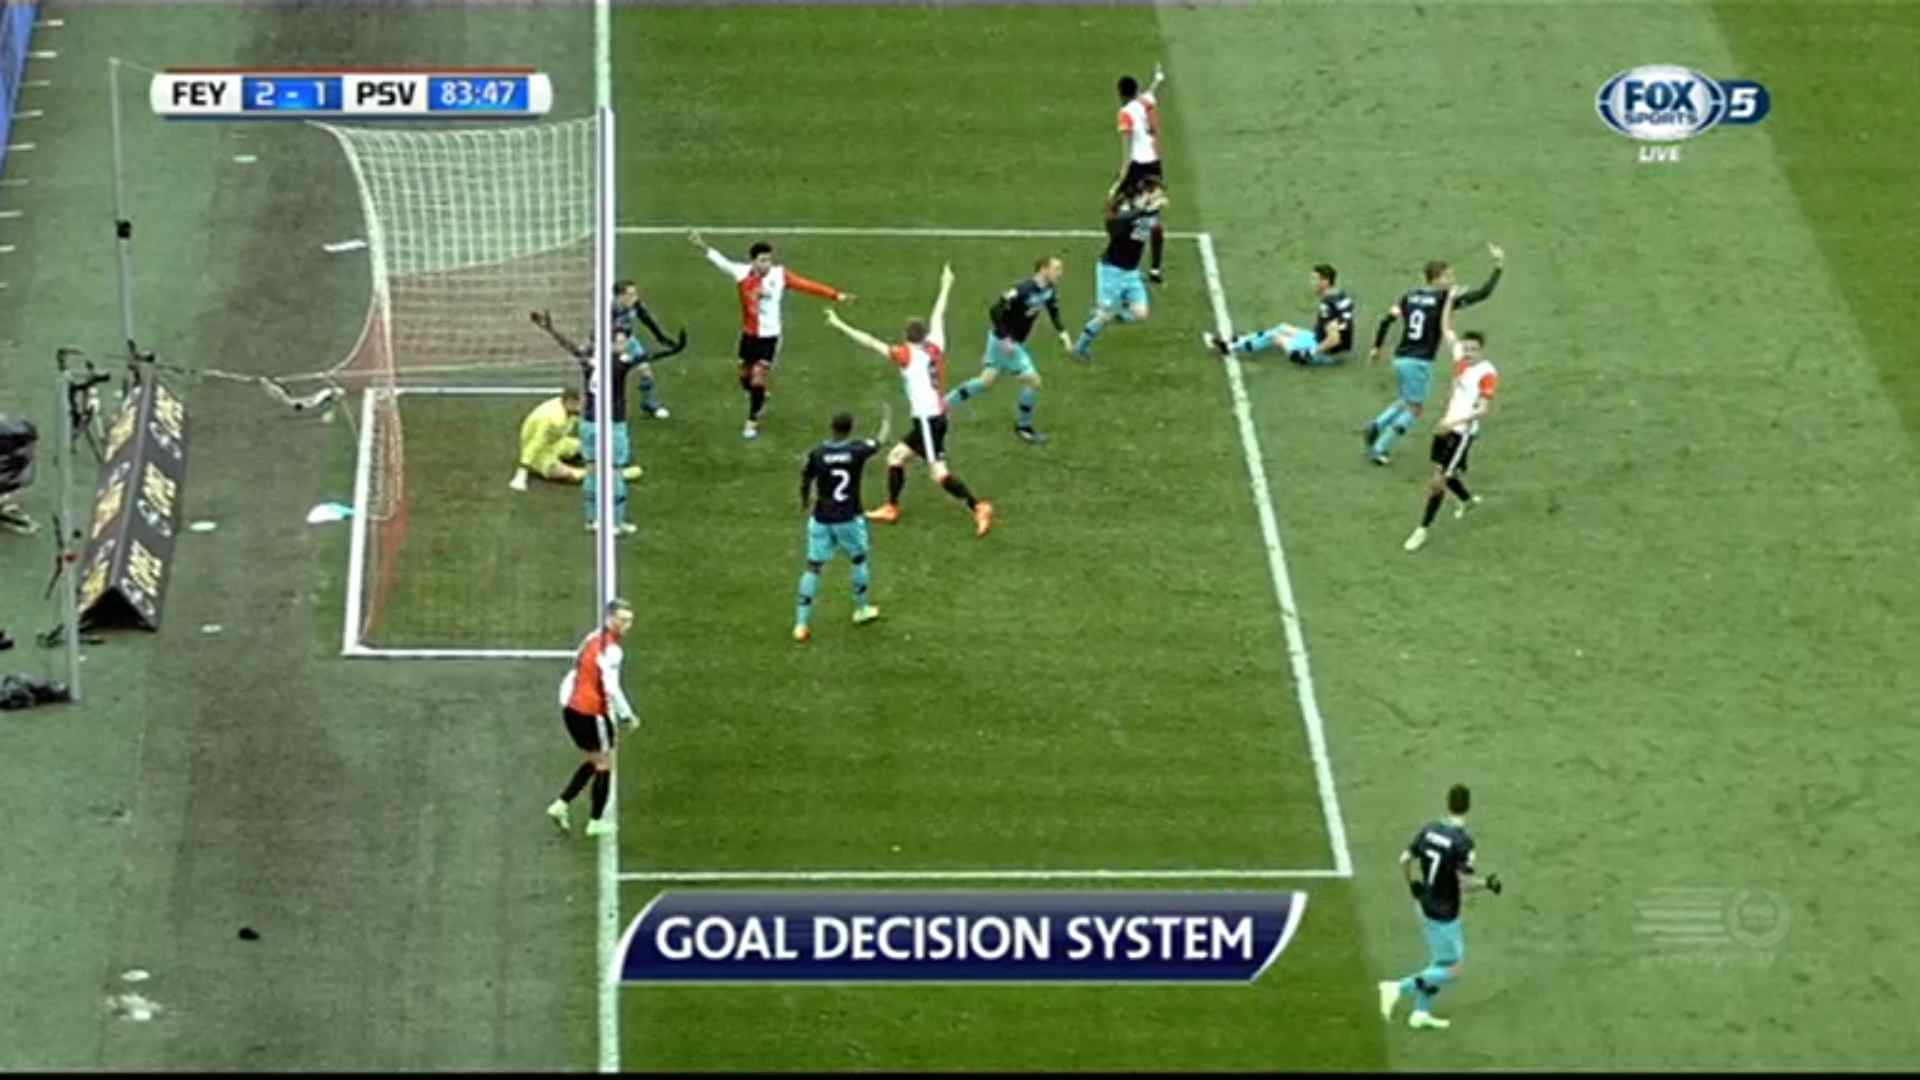 goal line technology close doubt referee camera call eredivisie web